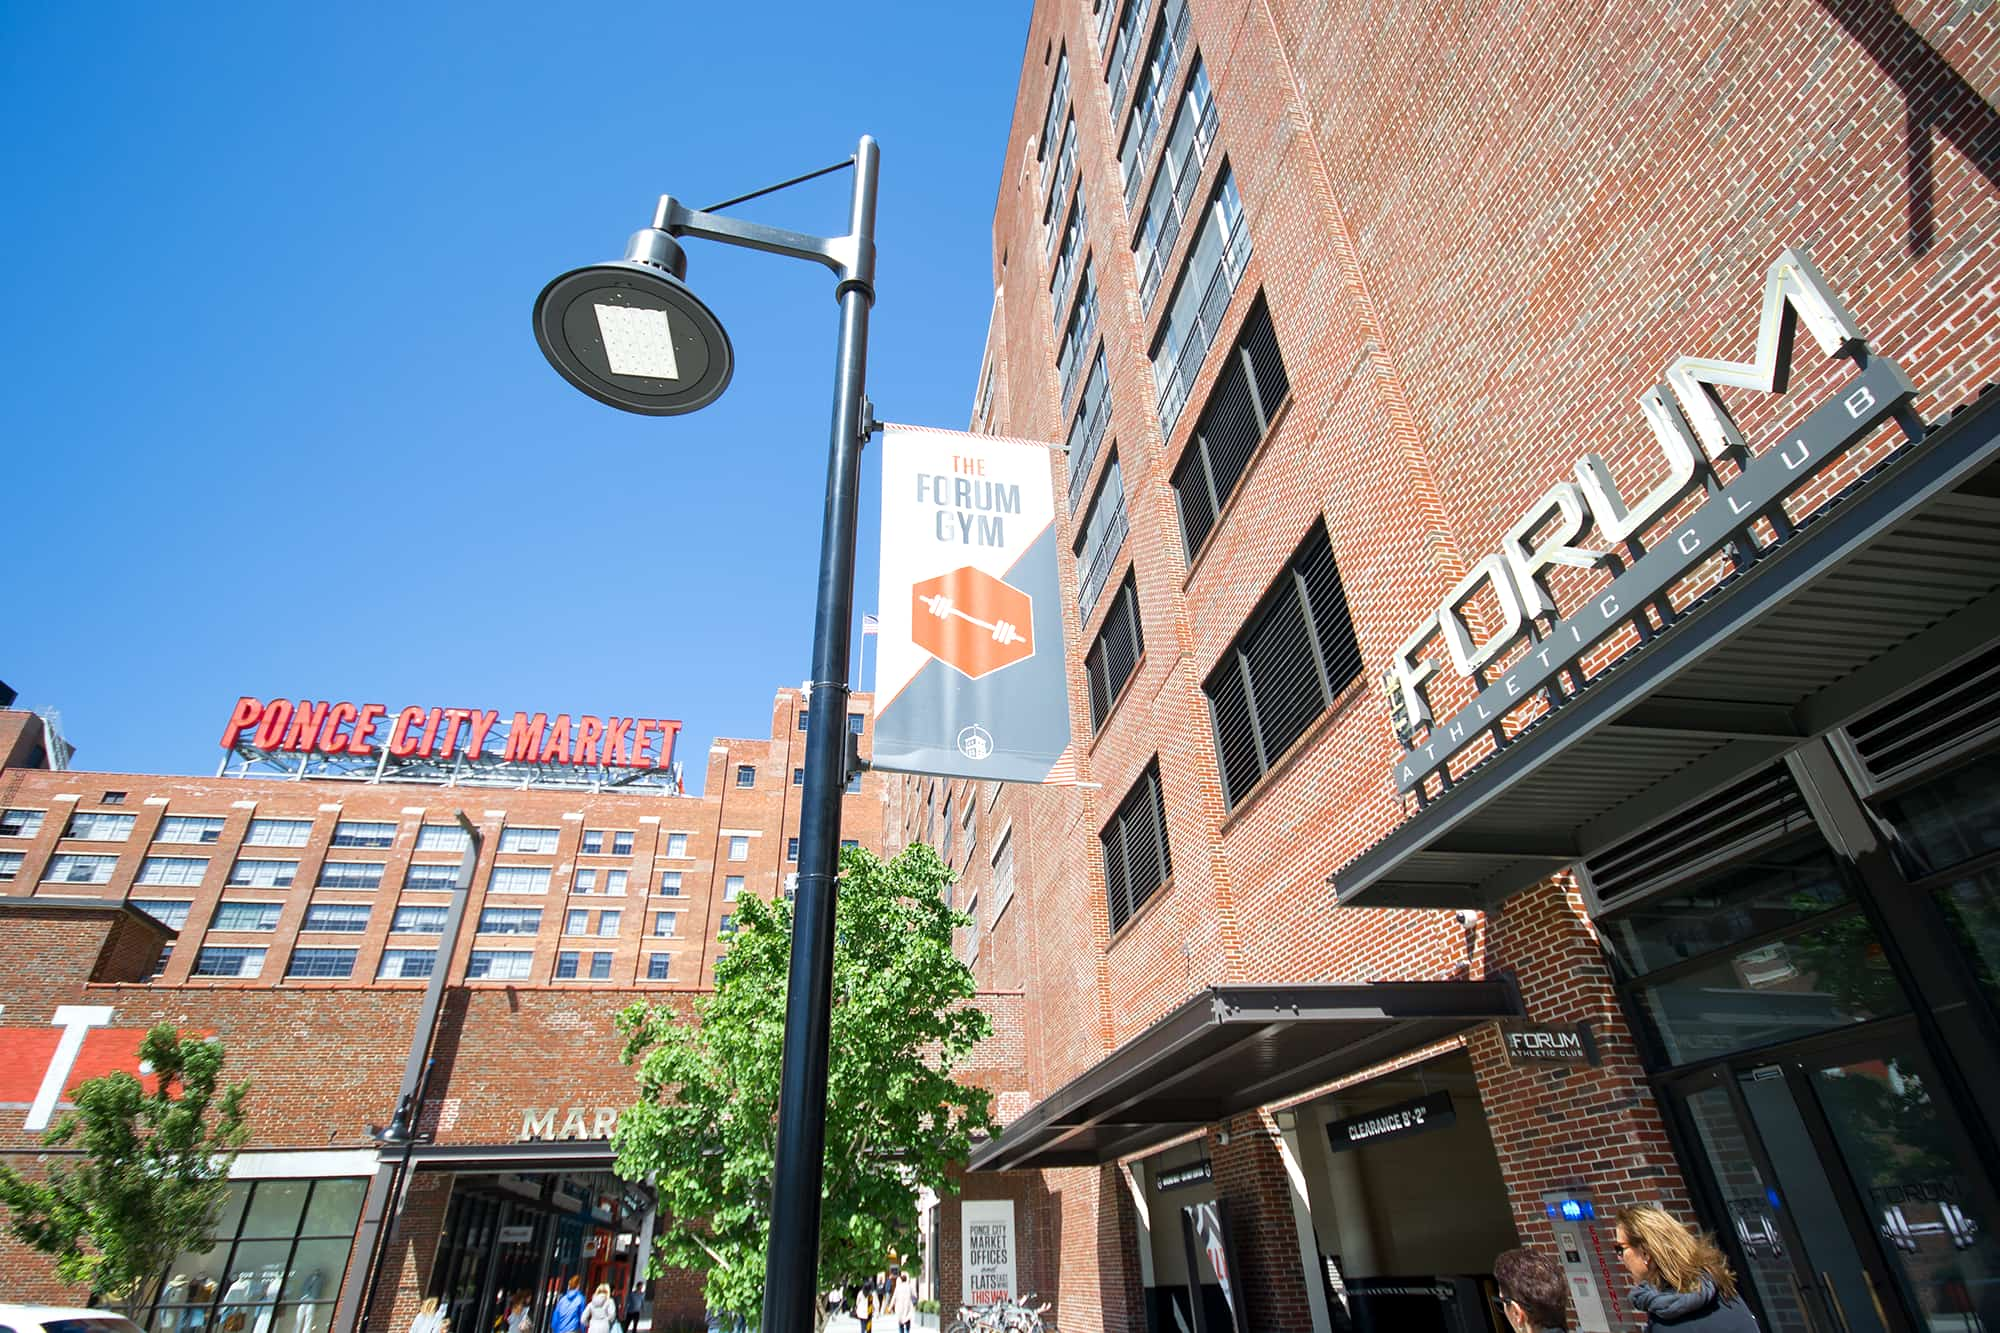 An exterior view of the Ponce City Market Forum location.